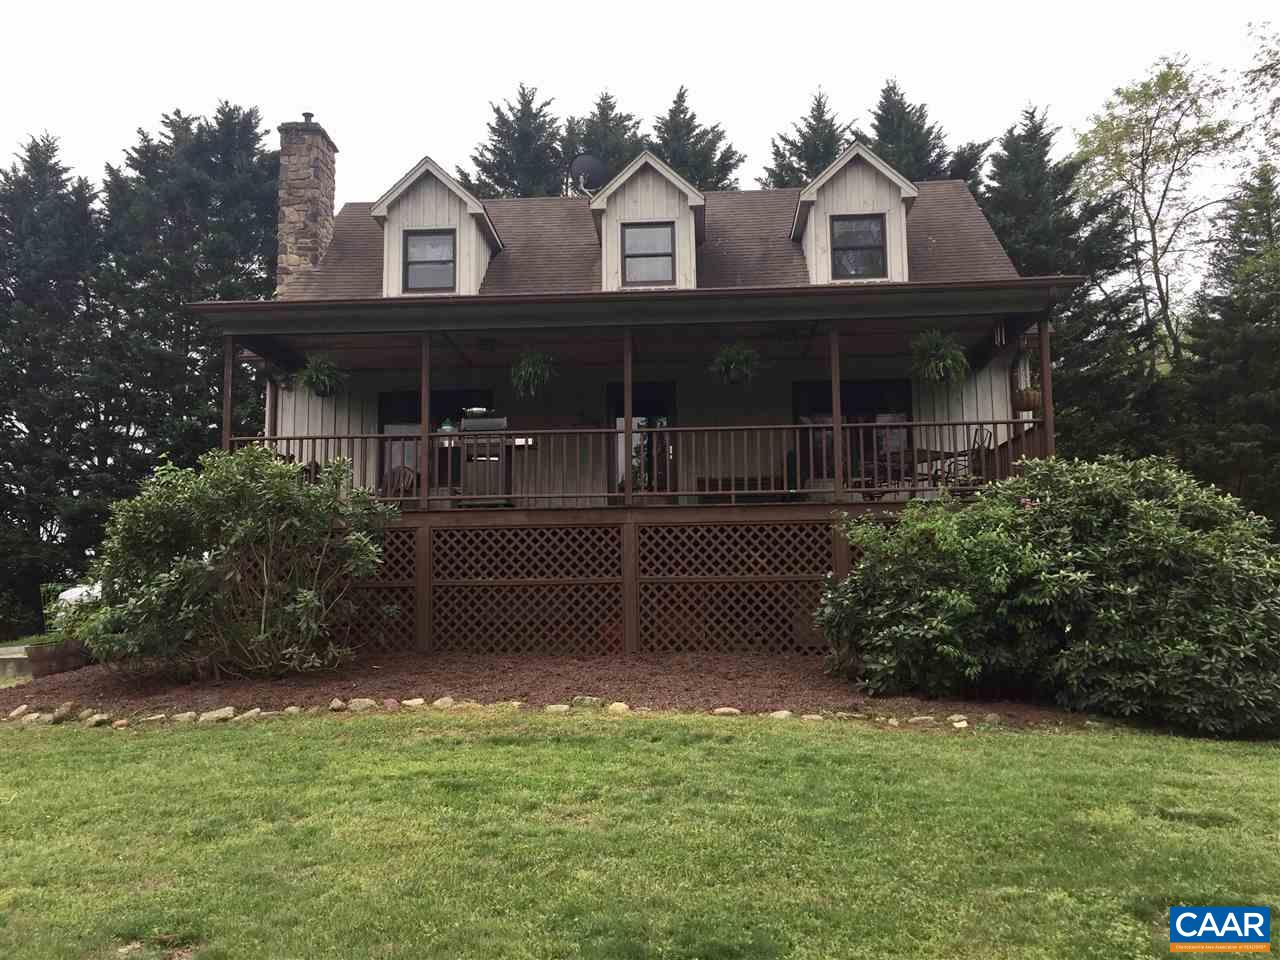 Single Family Home for Sale at 49 DUN GLORY Drive Rochelle, Virginia 22738 United States